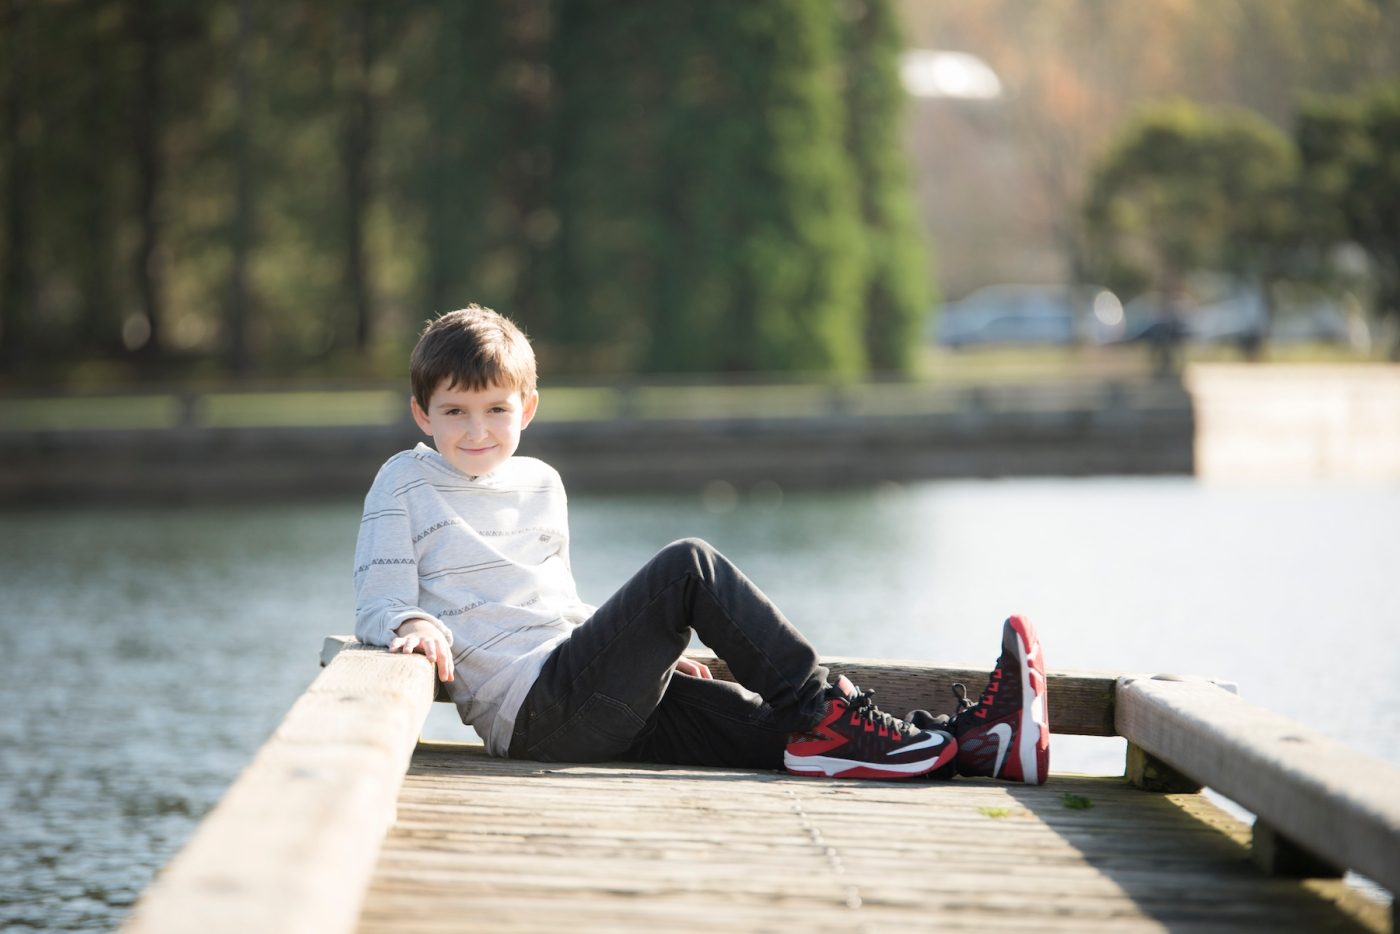 janes_photography_2016_coulon_park_renton_family_session_spencer8094